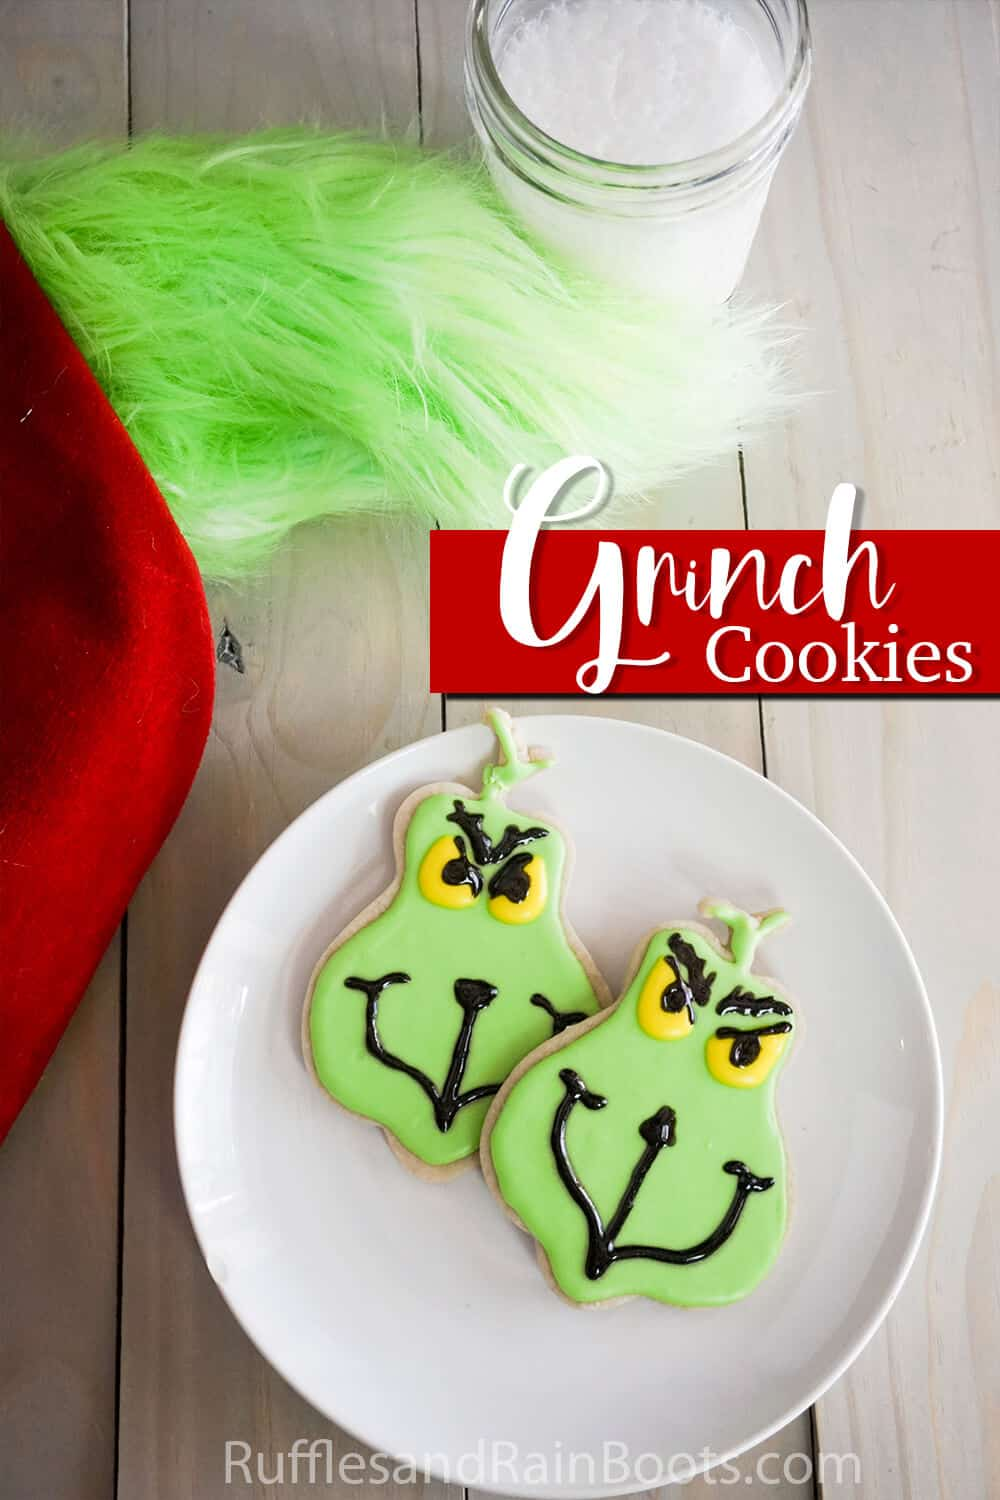 sugar cookies decorated as the grinch with text which reads grinch cookies